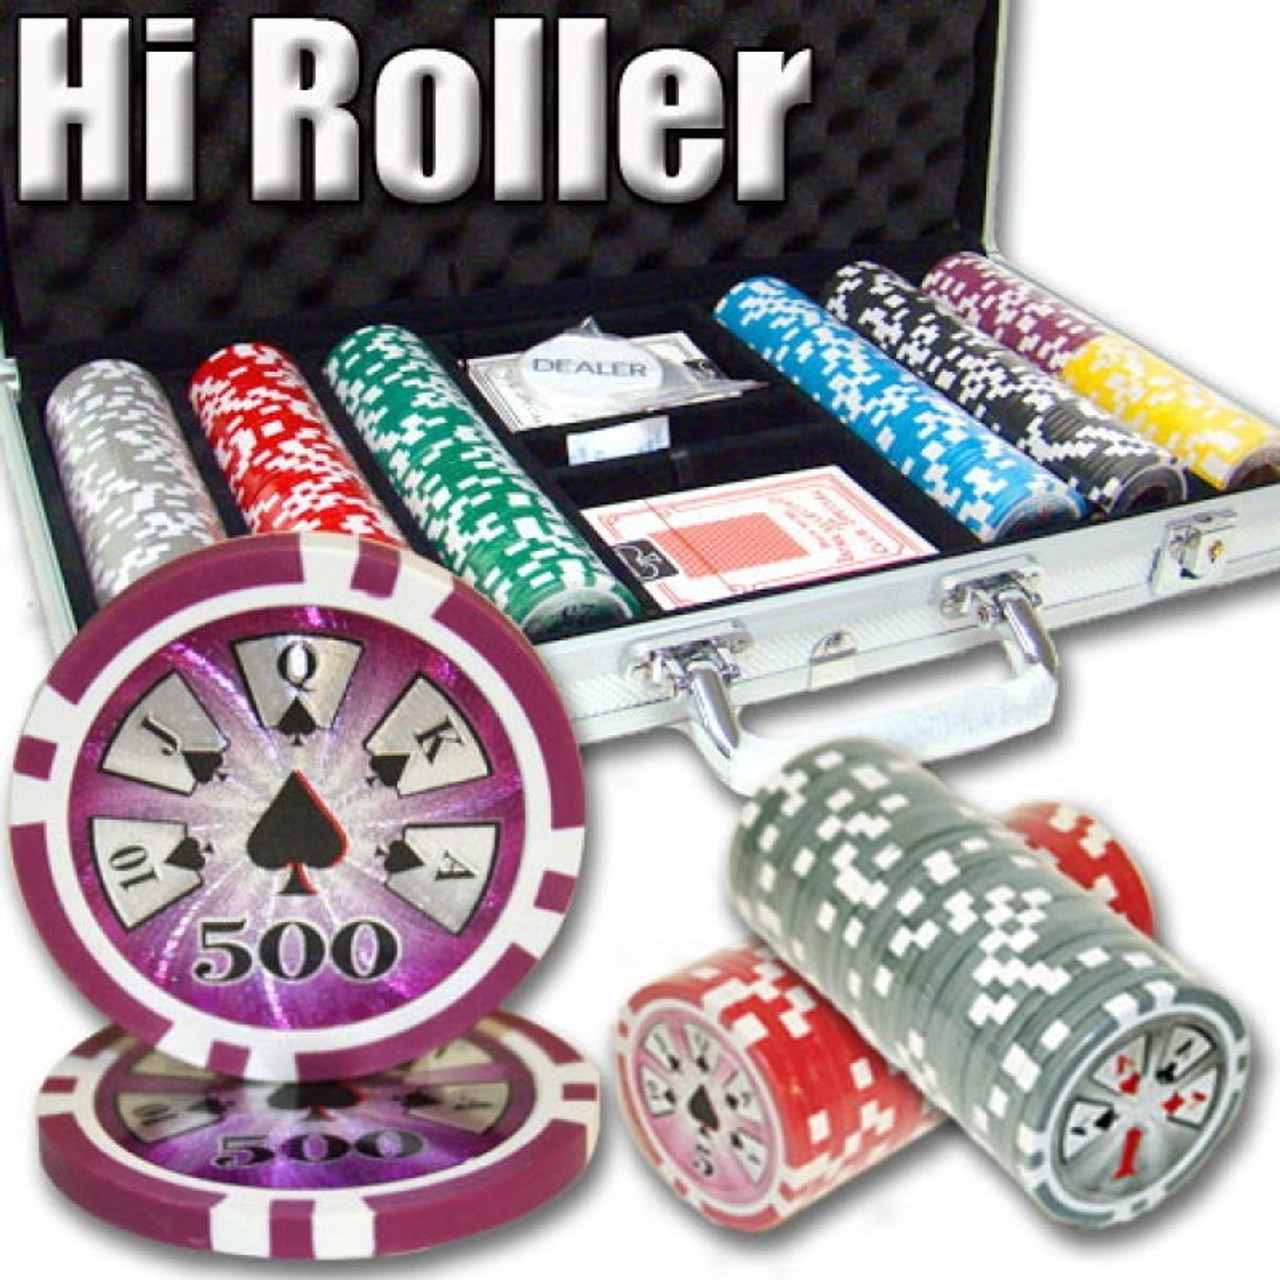 Poker Chip Set High Roller 500pc 14g Clay with Carry Case & FREE OFFER